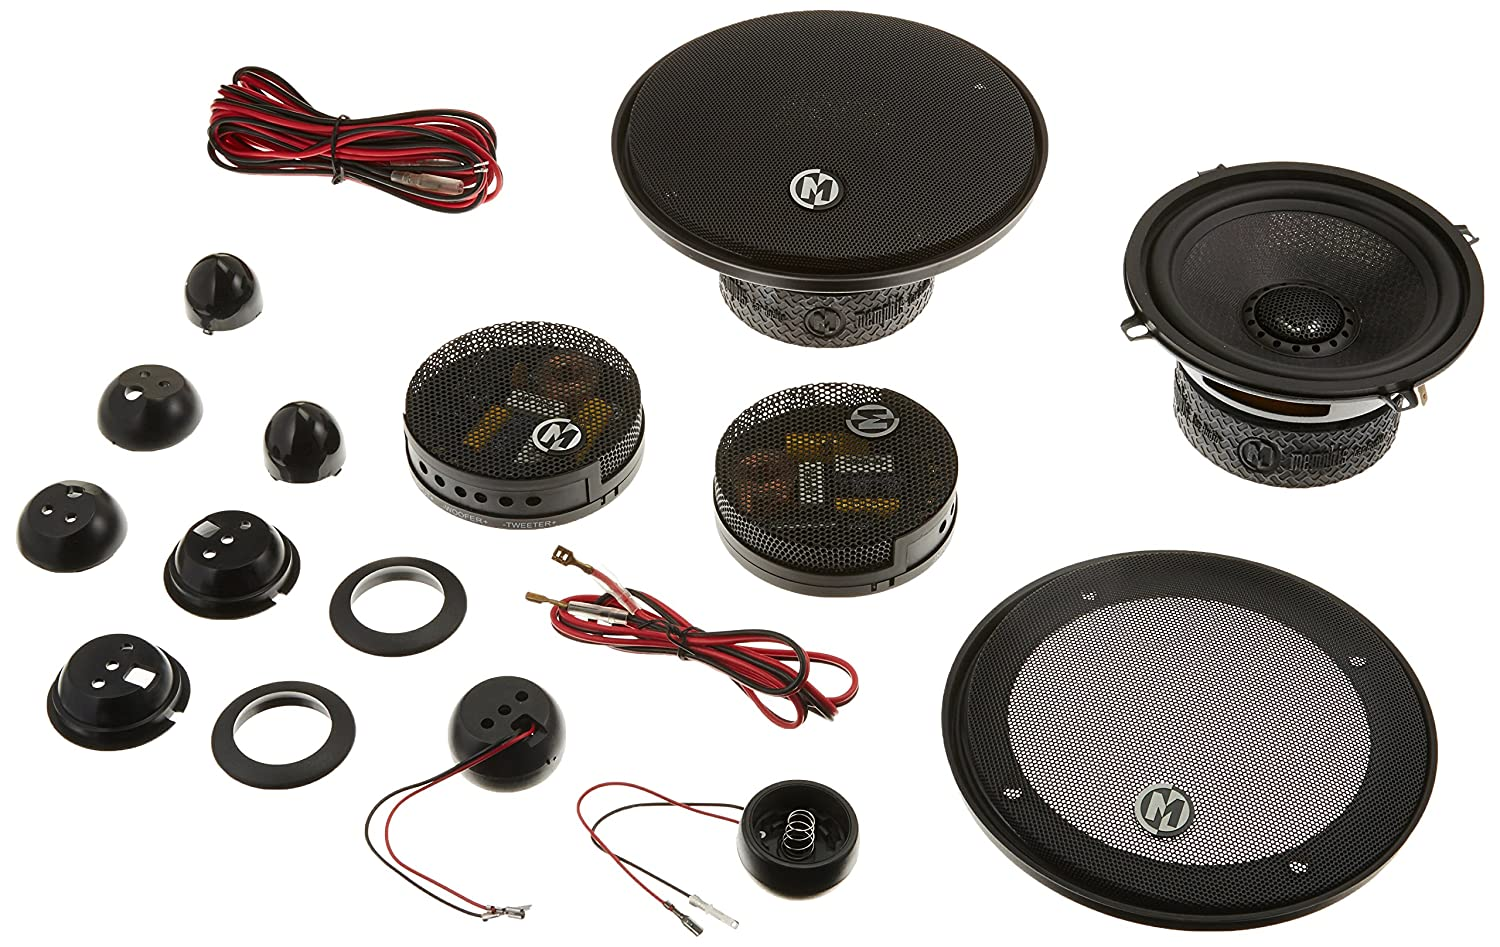 15 Mcs5a Memphis 525 Multi Synchronous Component Rockford Fosgate Speakers Speaker System Cell Phones Accessories